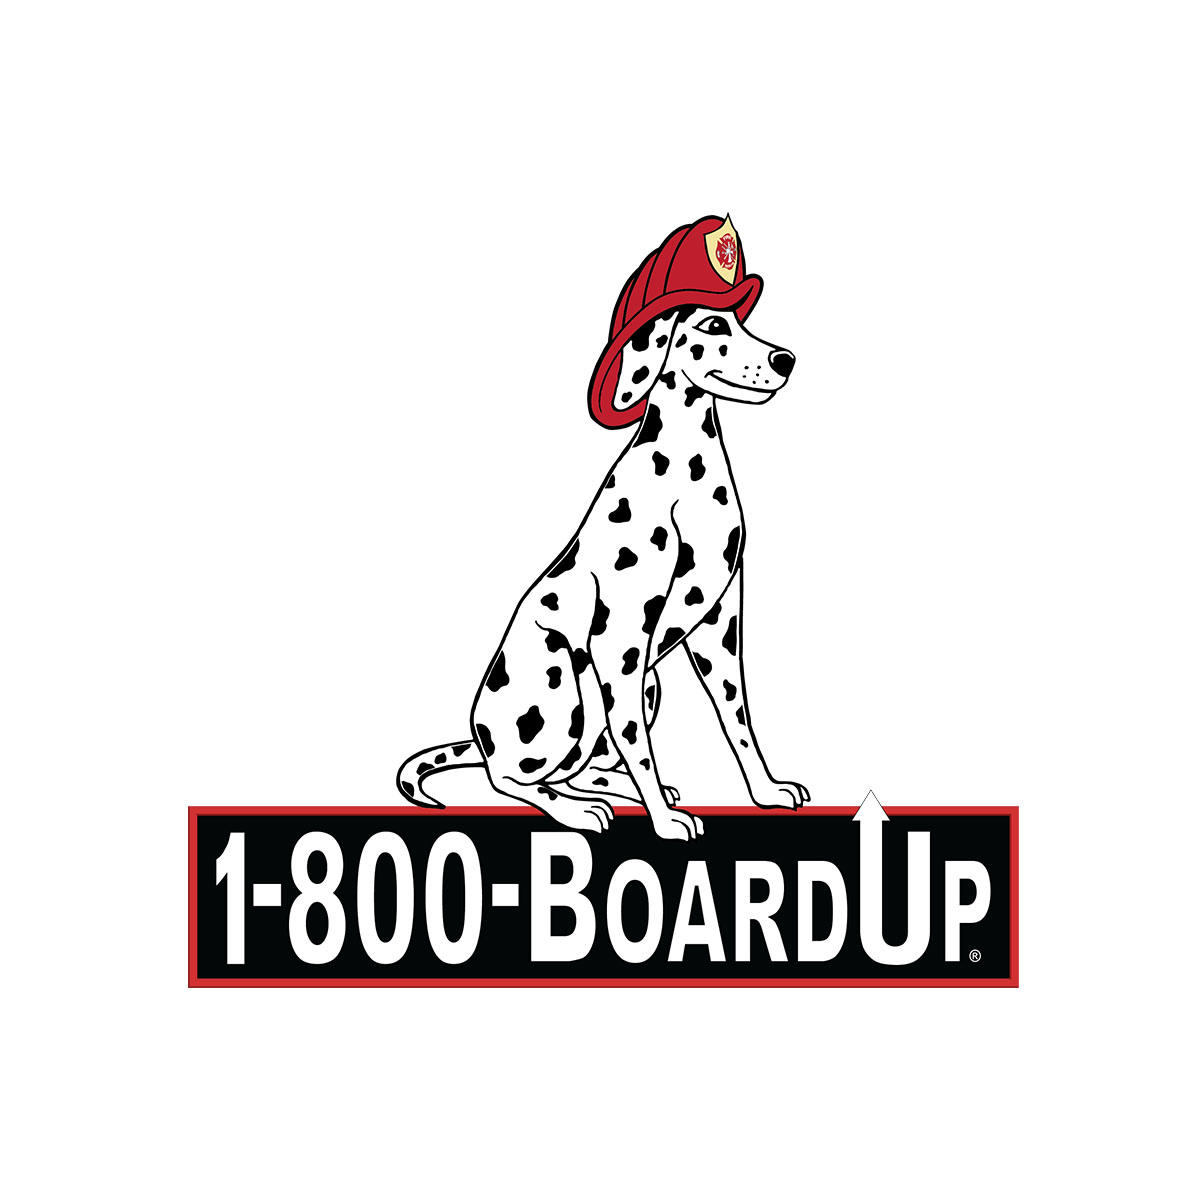 1-800-BOARDUP of North Salt Lake image 5